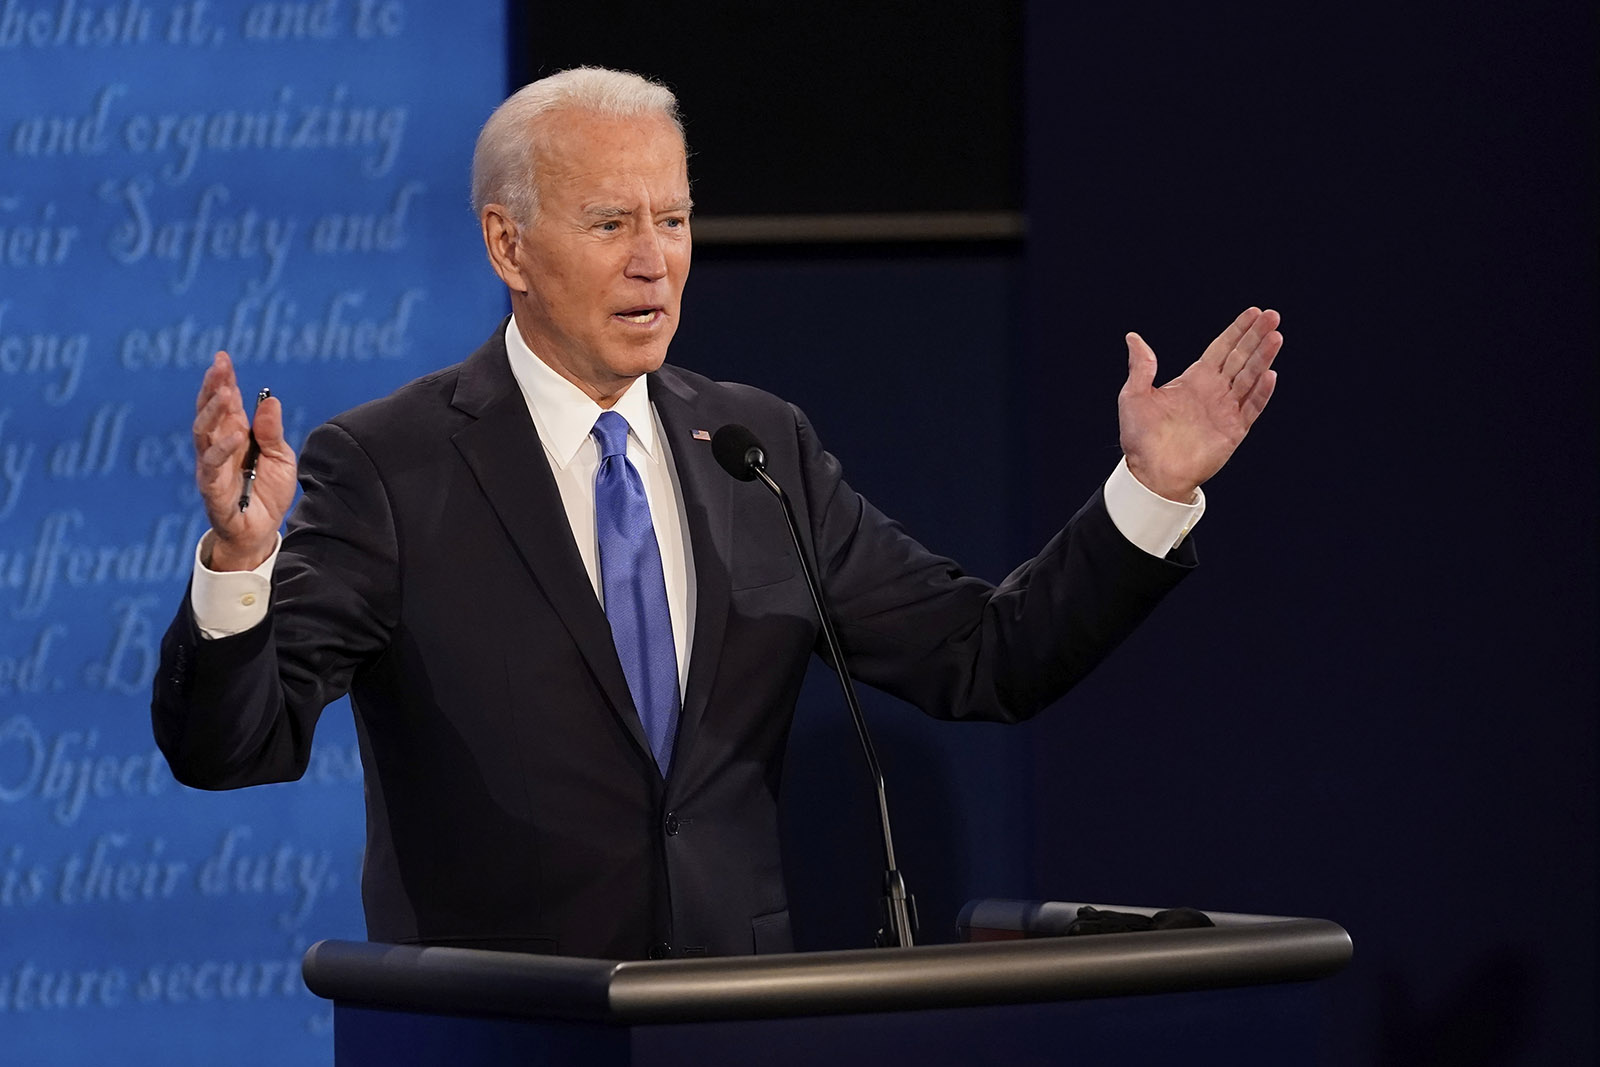 Democratic presidential candidate Joe Biden answers a question during the second and final presidential debate Thursday in Nashville.